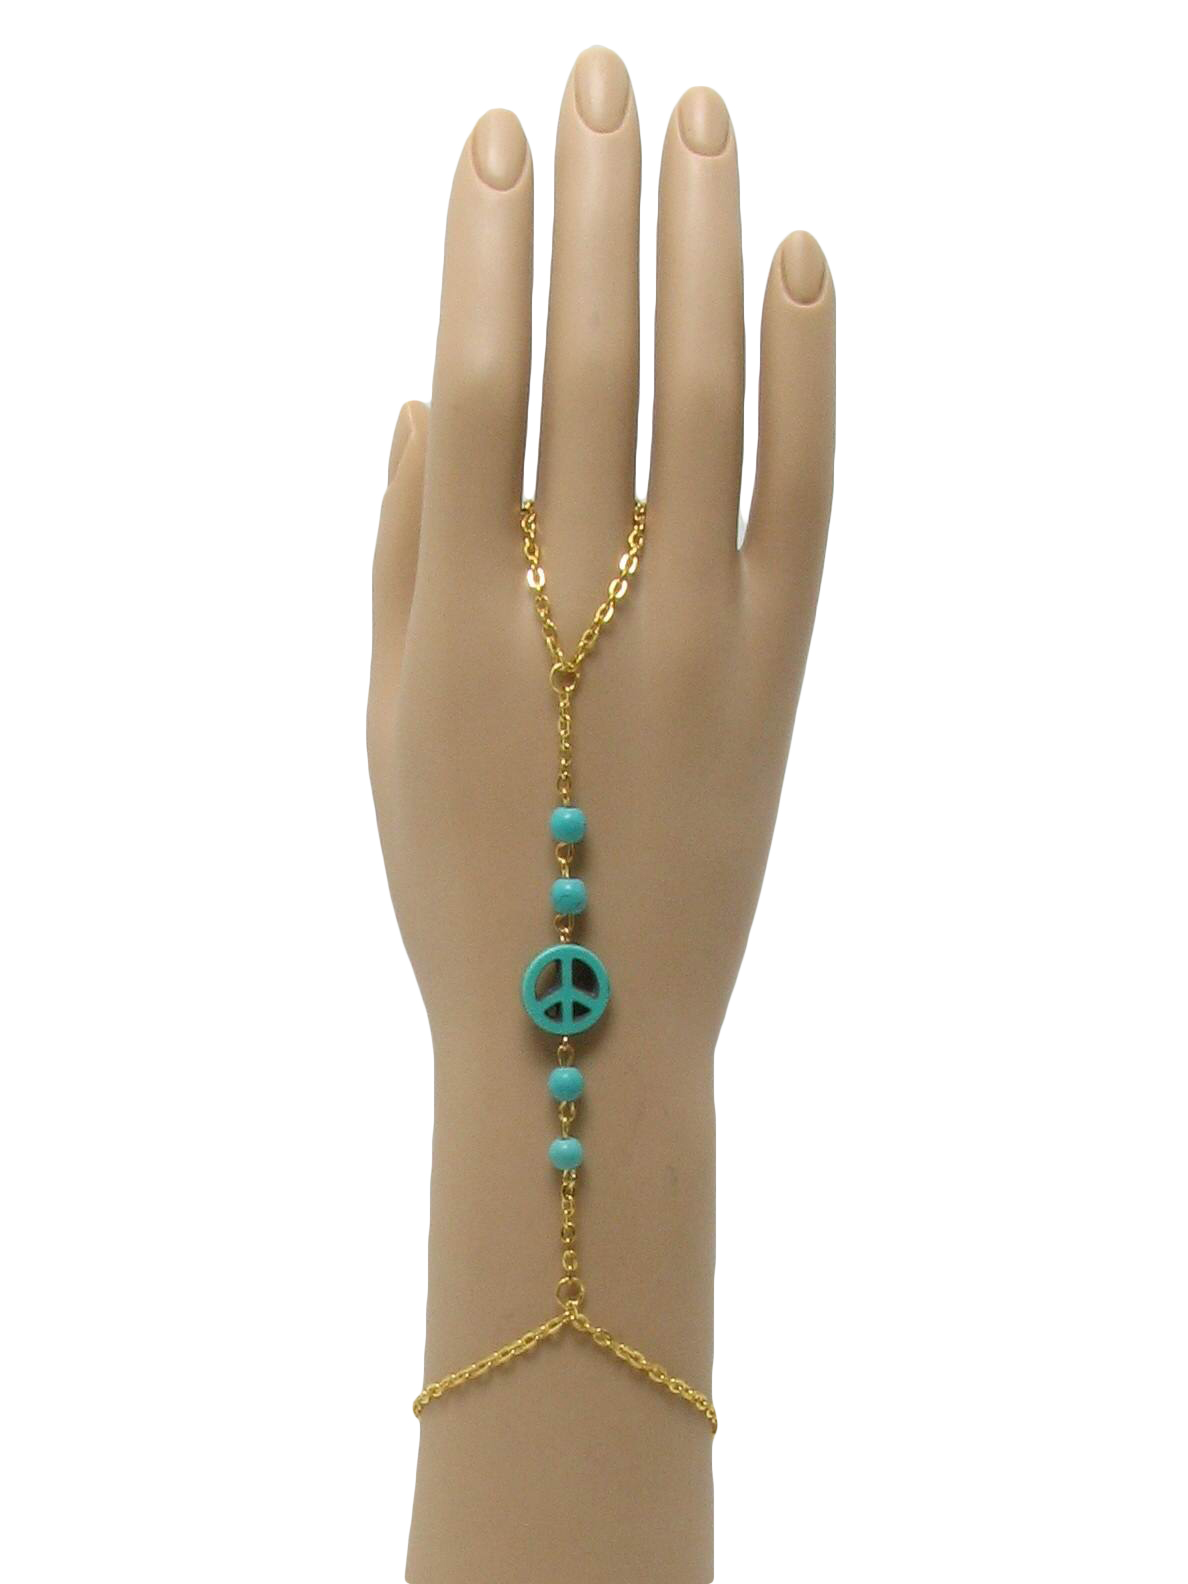 70u0027s Missing Label Ring: 70s Style (made Recently)  Missing Label  Womens  Gold Hippie Ring With Attached Bracelet That Has A Cute Turquoise Peace  Symbol And ...